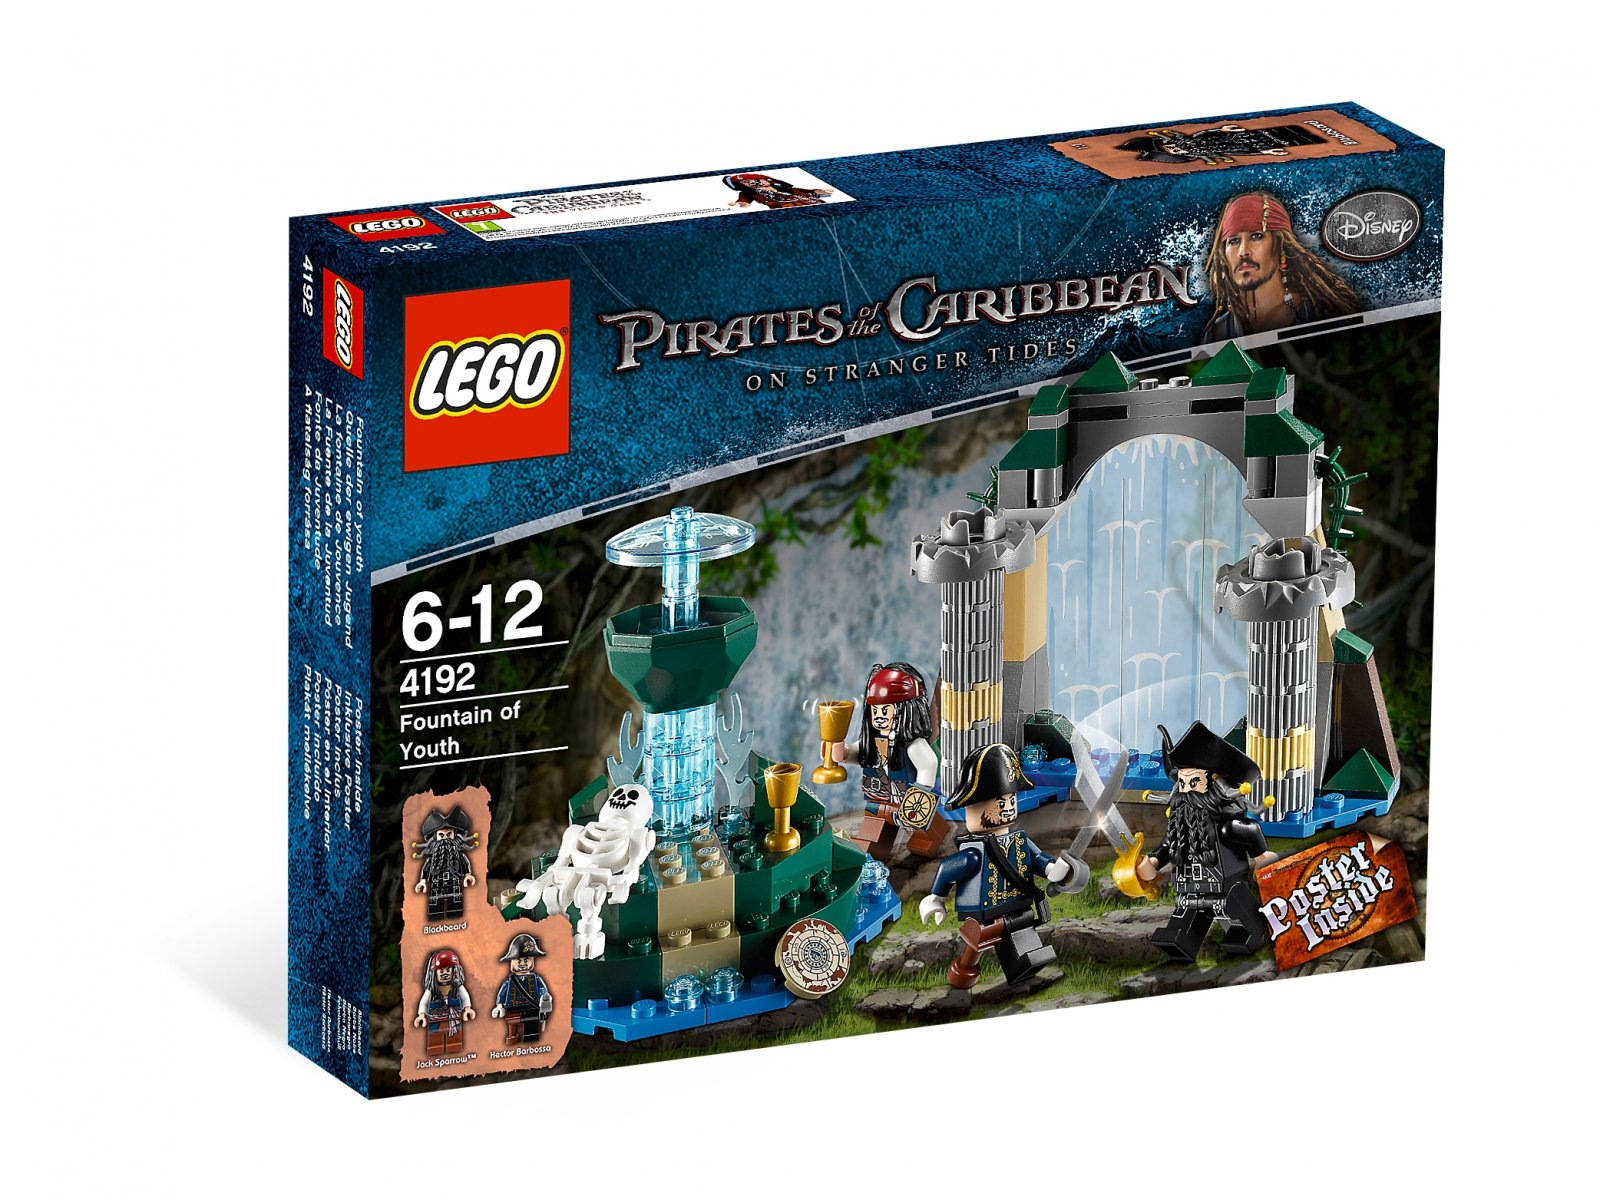 LEGO Pirates of the Caribbean™ 4192 Fountain of Youth